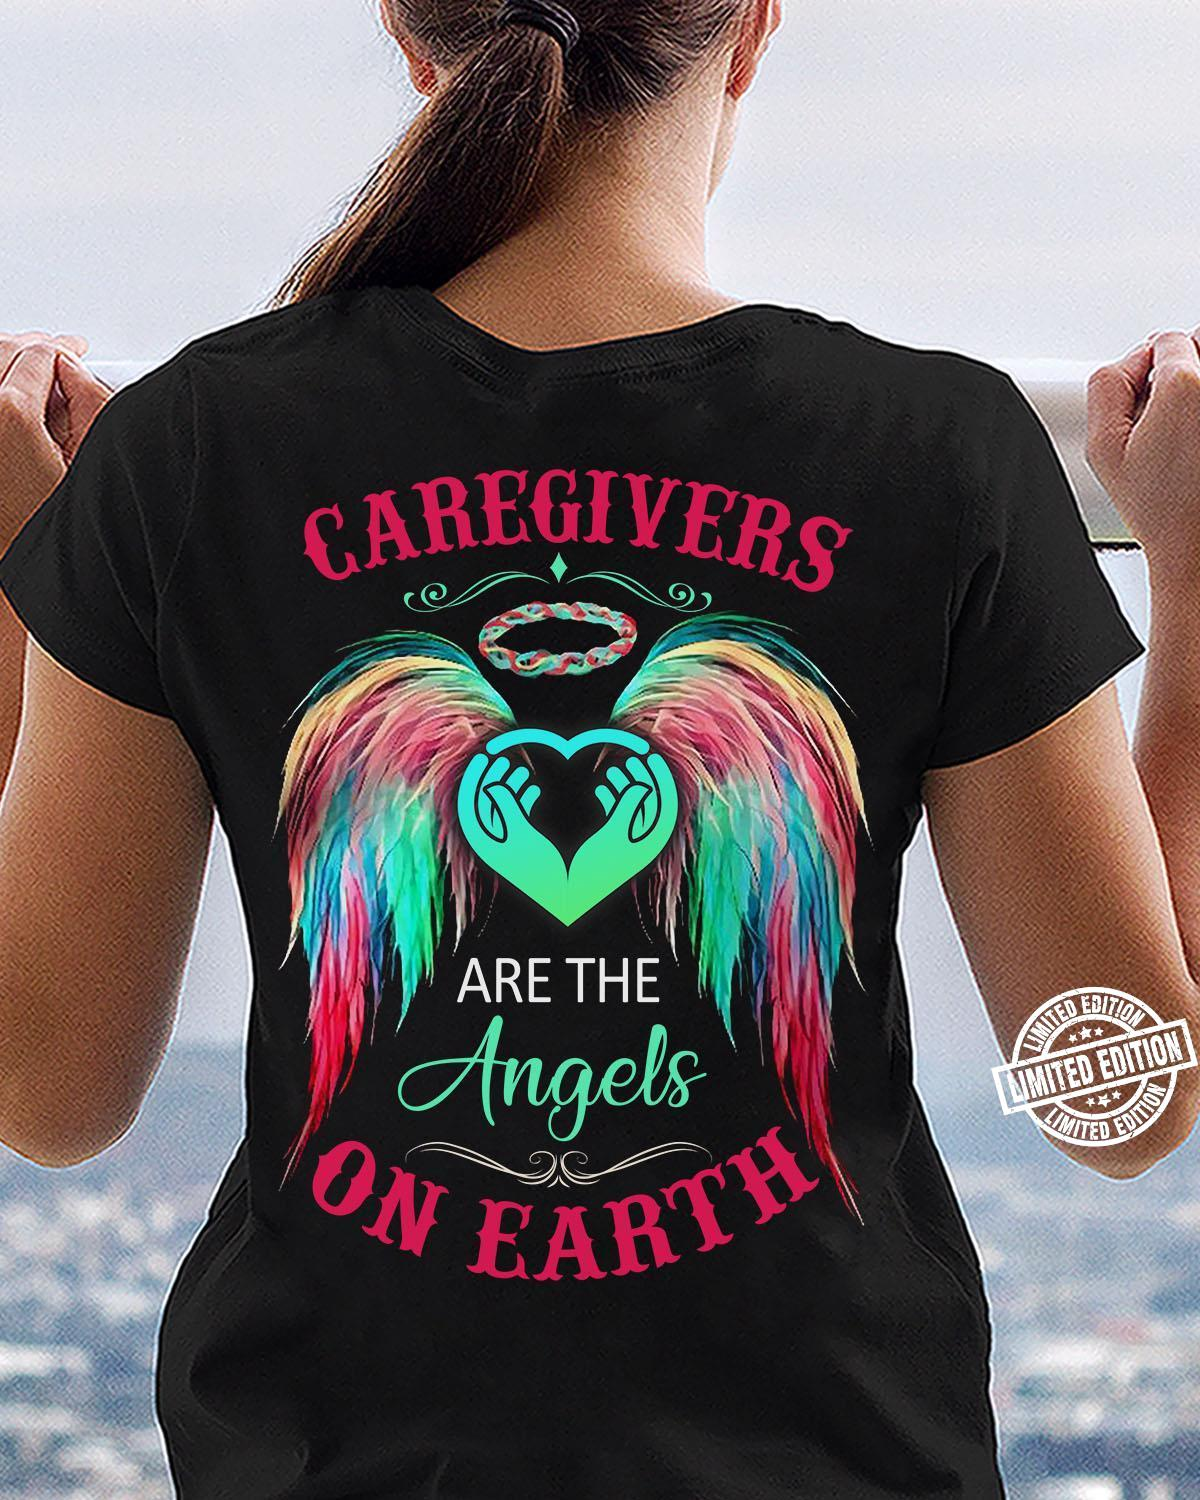 Caregivers are the angels on earth shirt